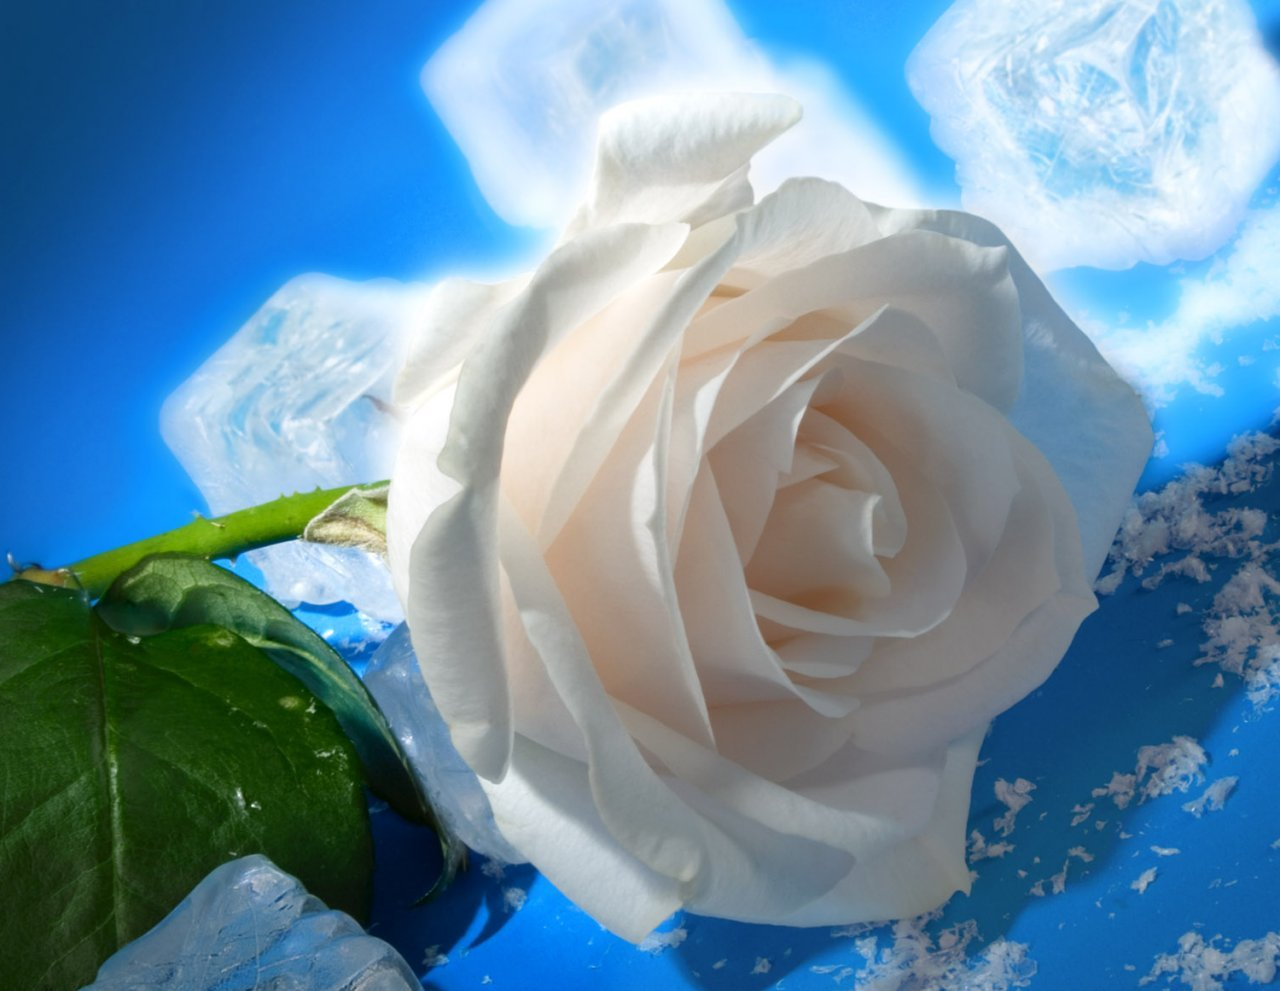 ... Rose HD photos flowers wallpapers collections free Download | PIXHOME